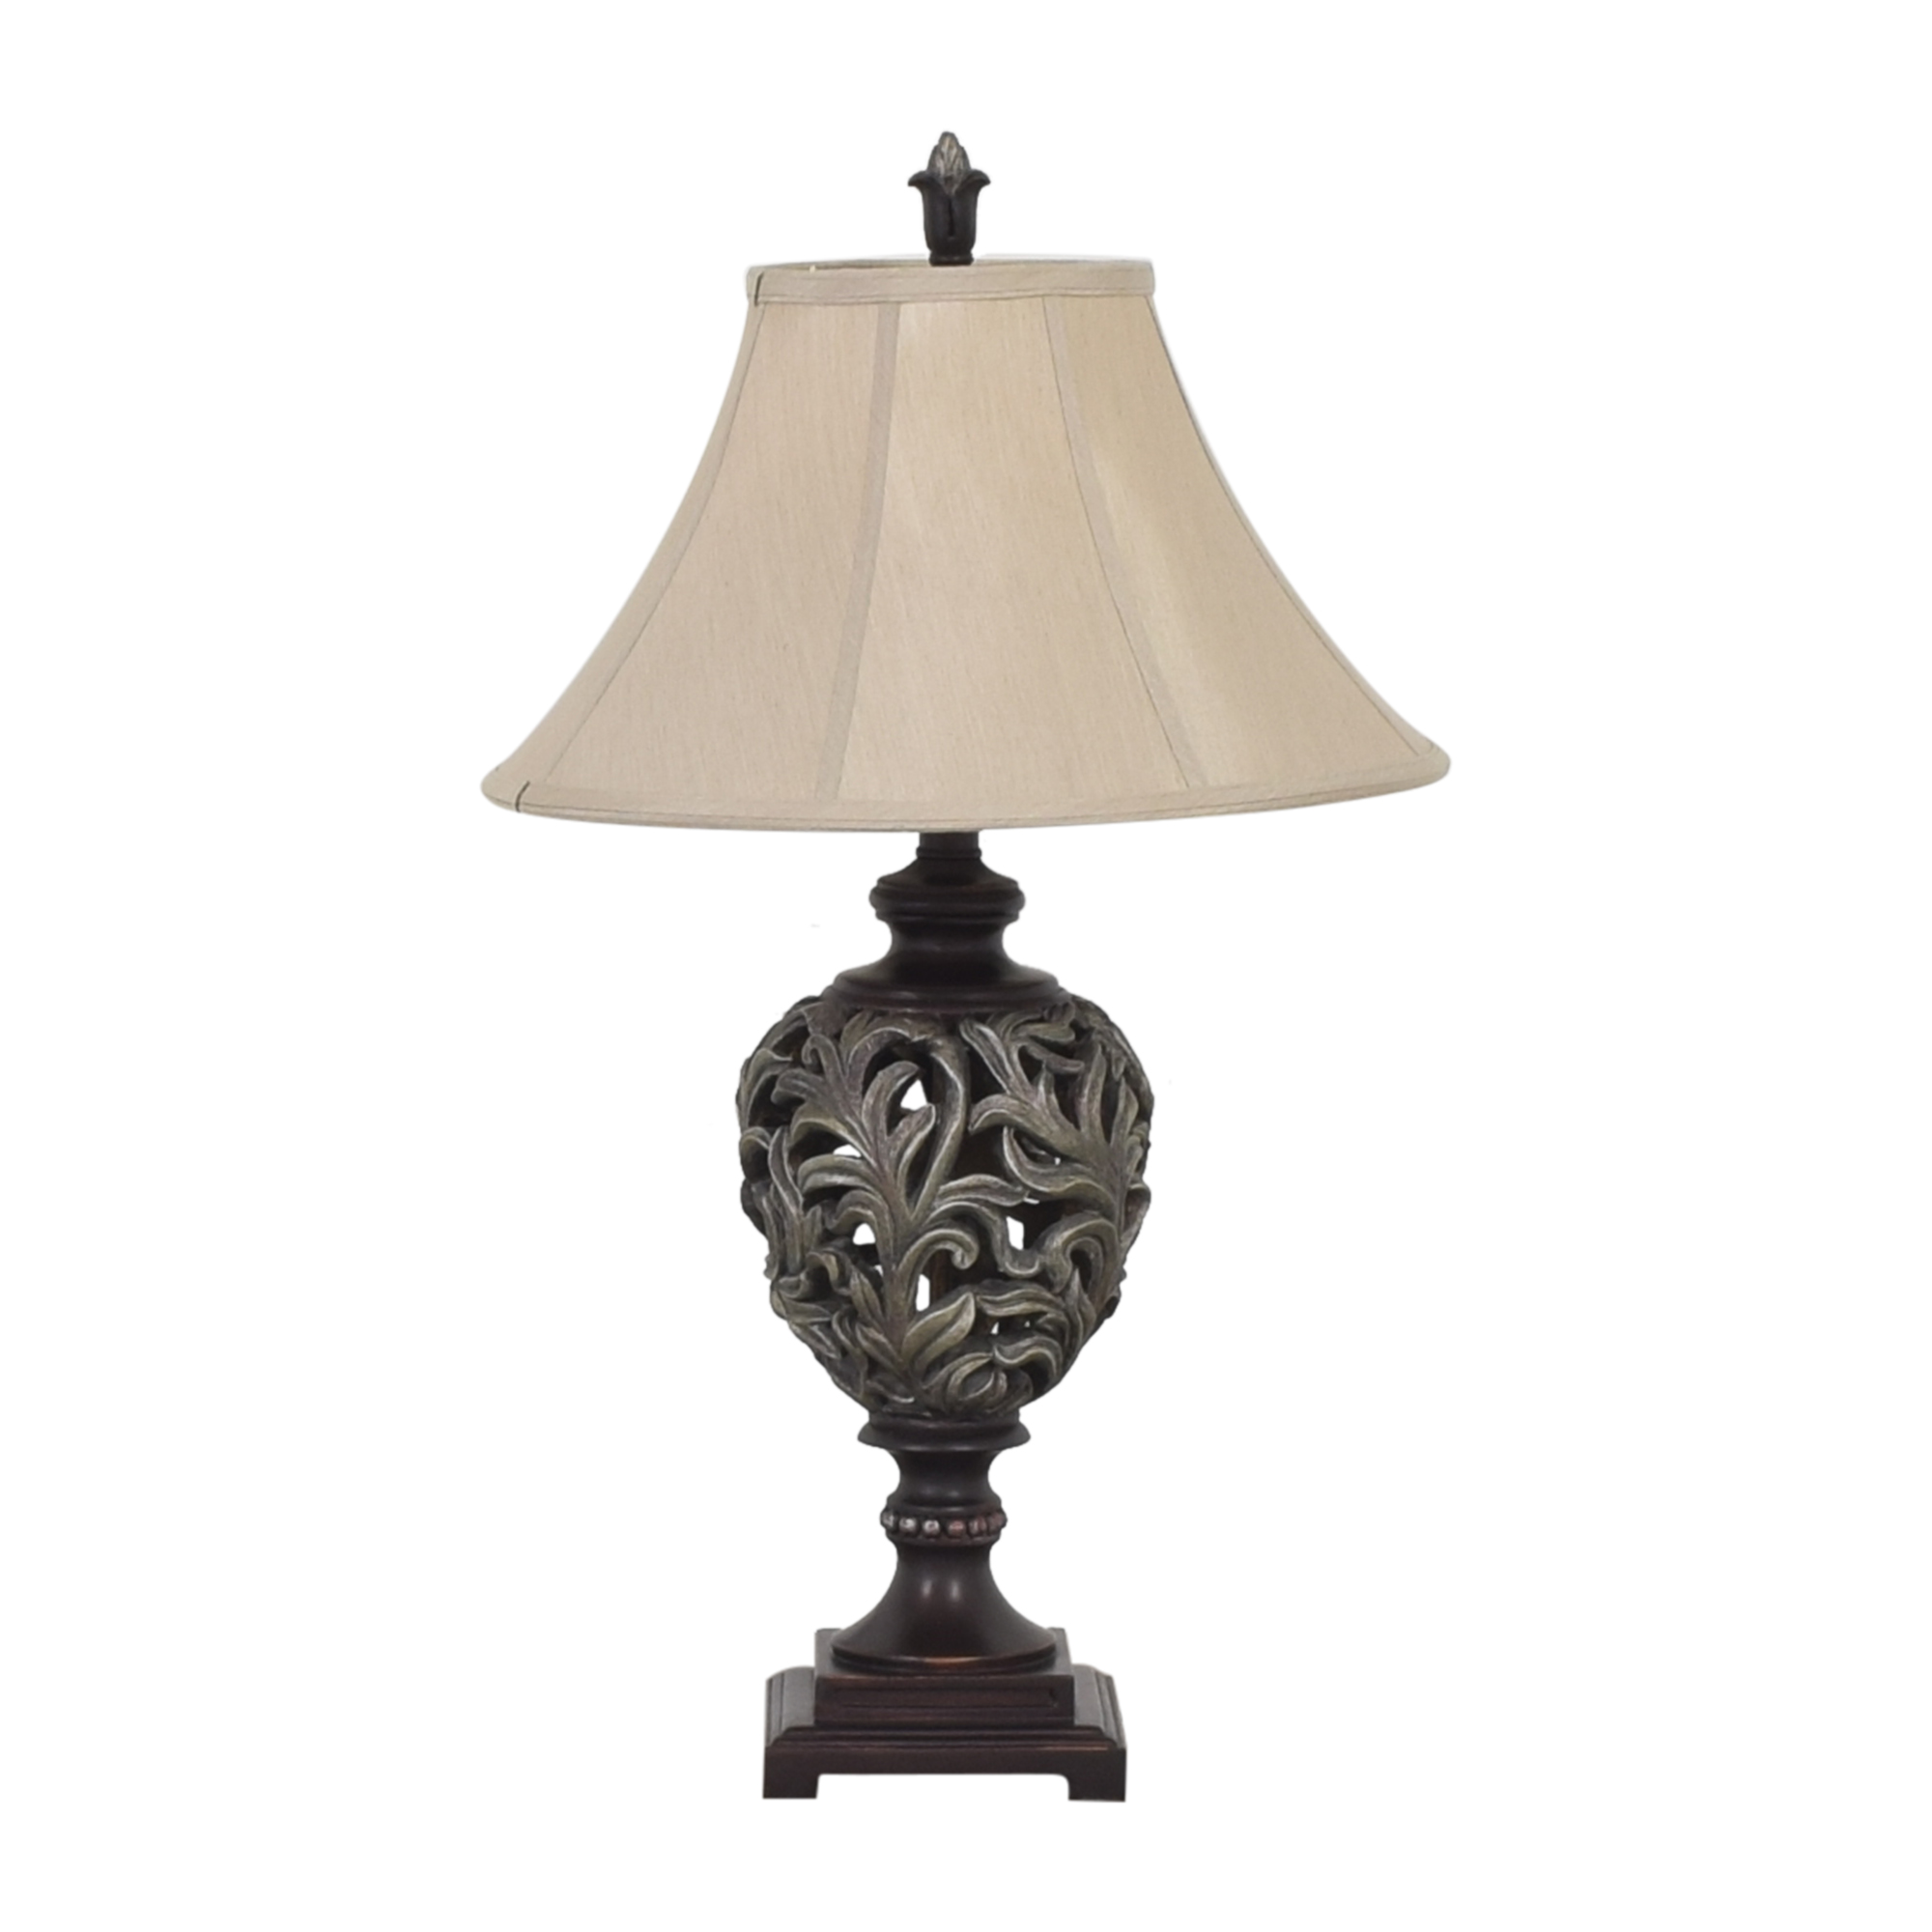 Ashley Furniture Ashley Furniture Deborah Table Lamp